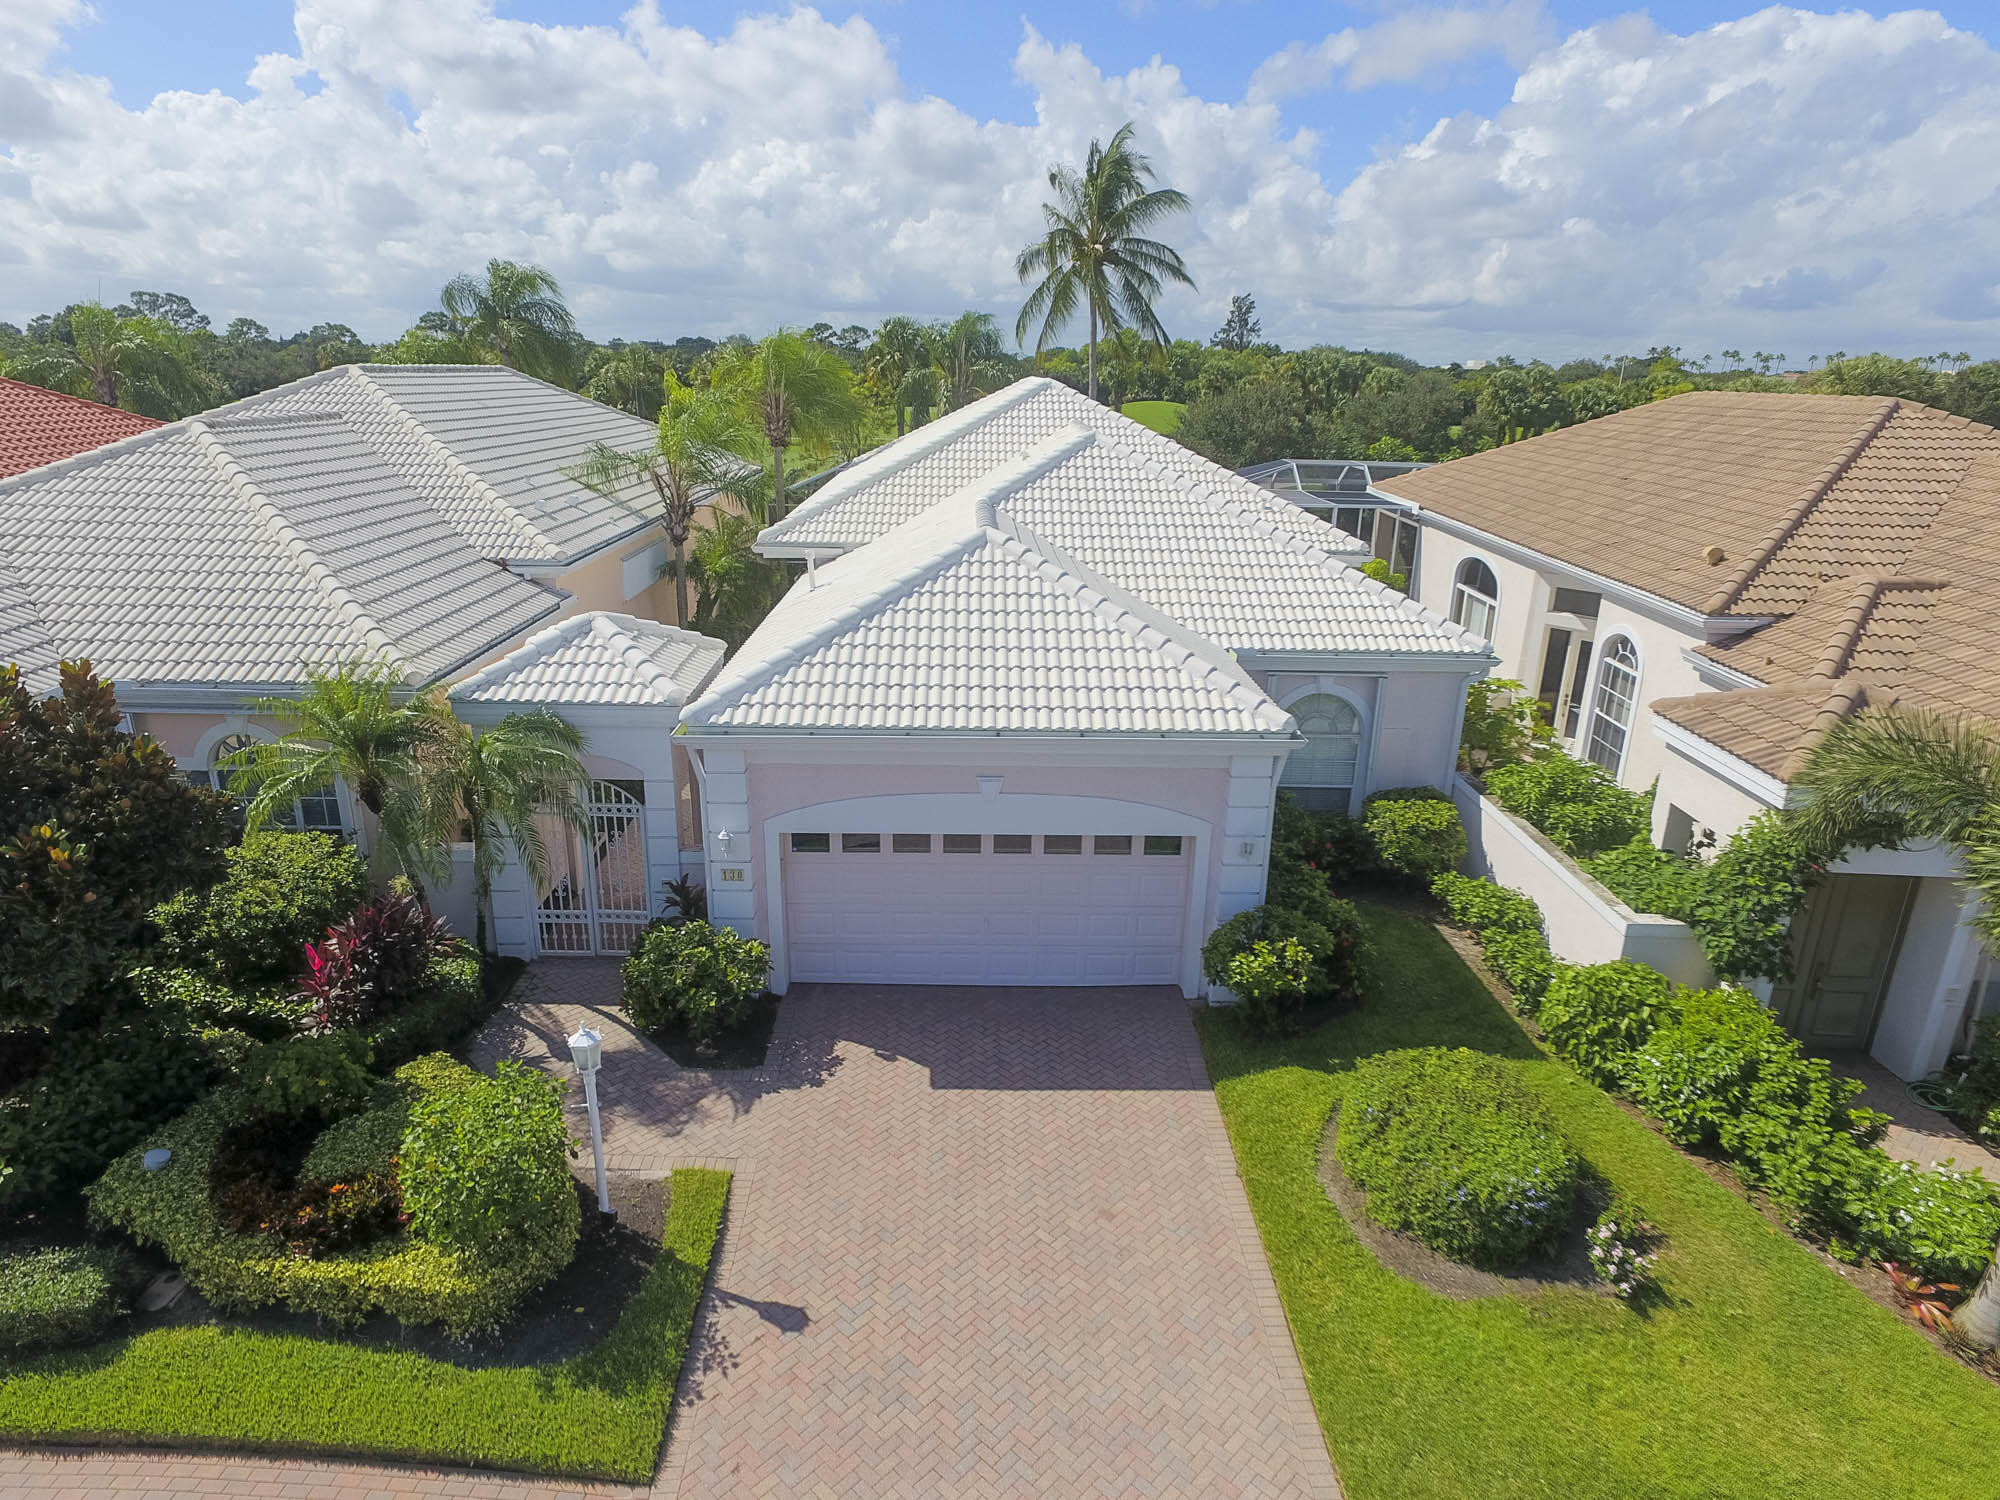 Image 2 For 130 Coral Cay Drive